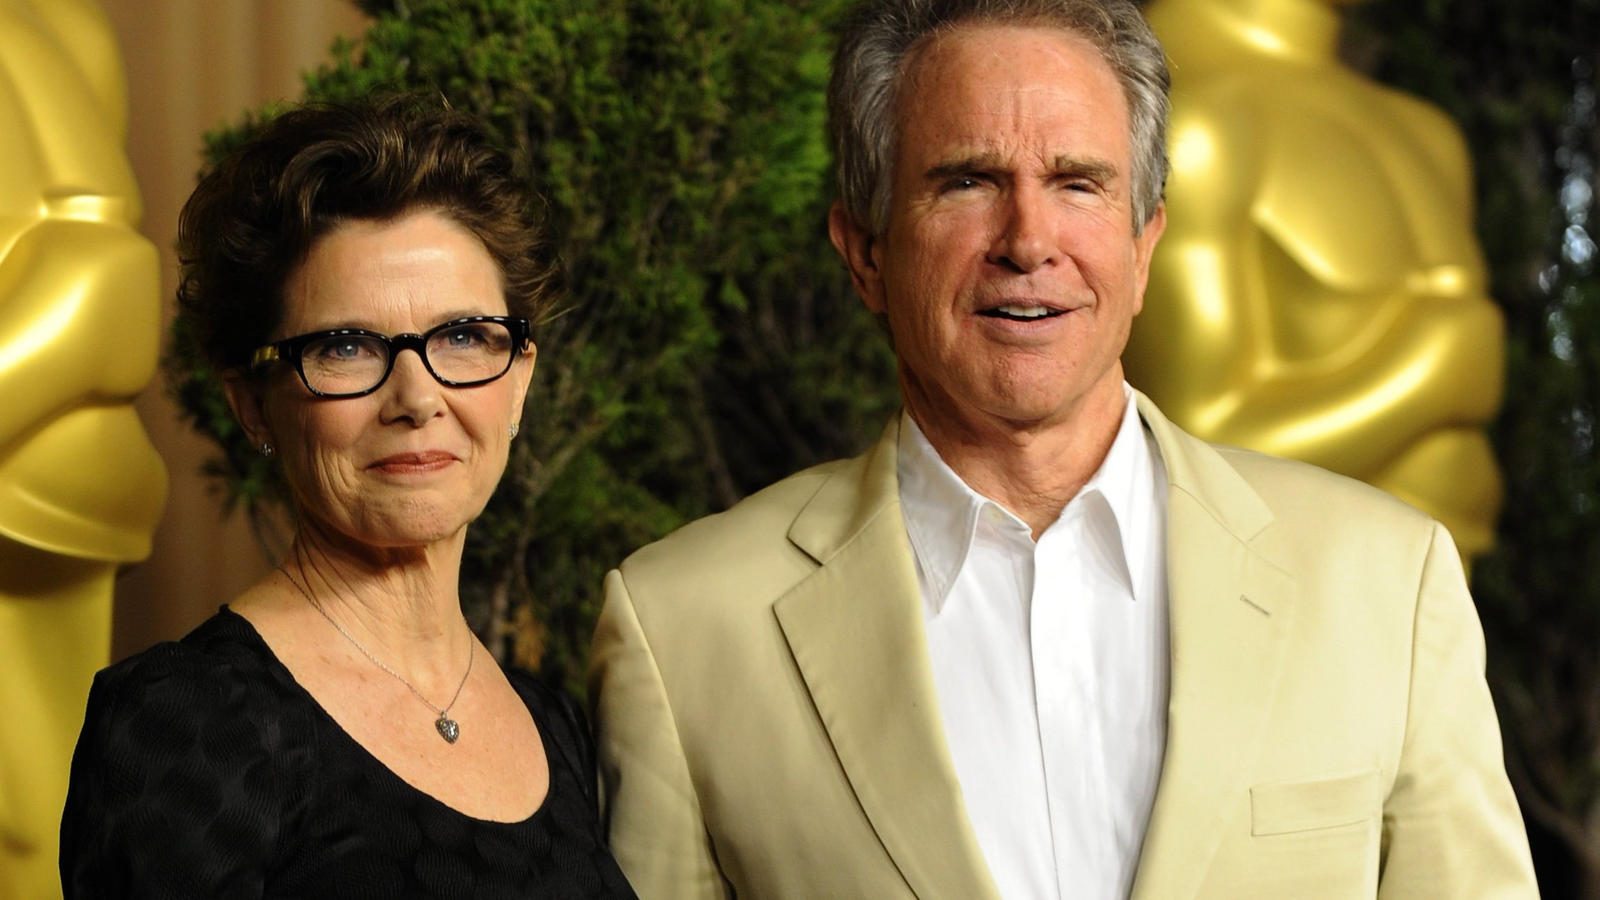 ARCHIV - epa02569476 US actress Annette Bening and her husband Warren Beatty arrive for the 83rd Academy Awards nominees luncheon in Beverly Hills, California, USA, 07 February 2011. EPA/MIKE NELSON (zu dpa Warren Beatty nennt transsexuellen Sohn sei